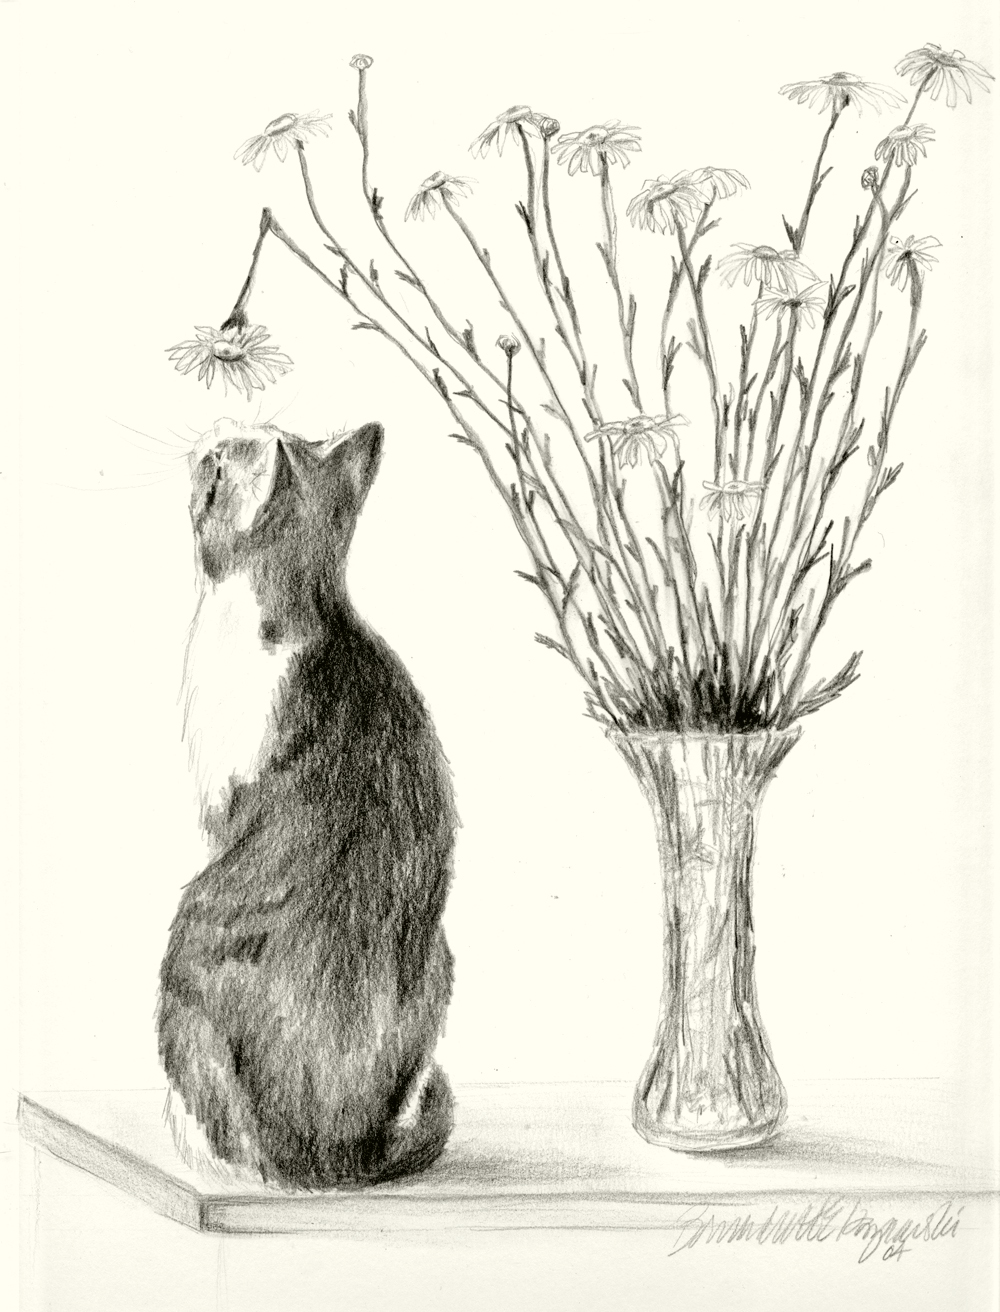 pencil portrait of cat with daisies